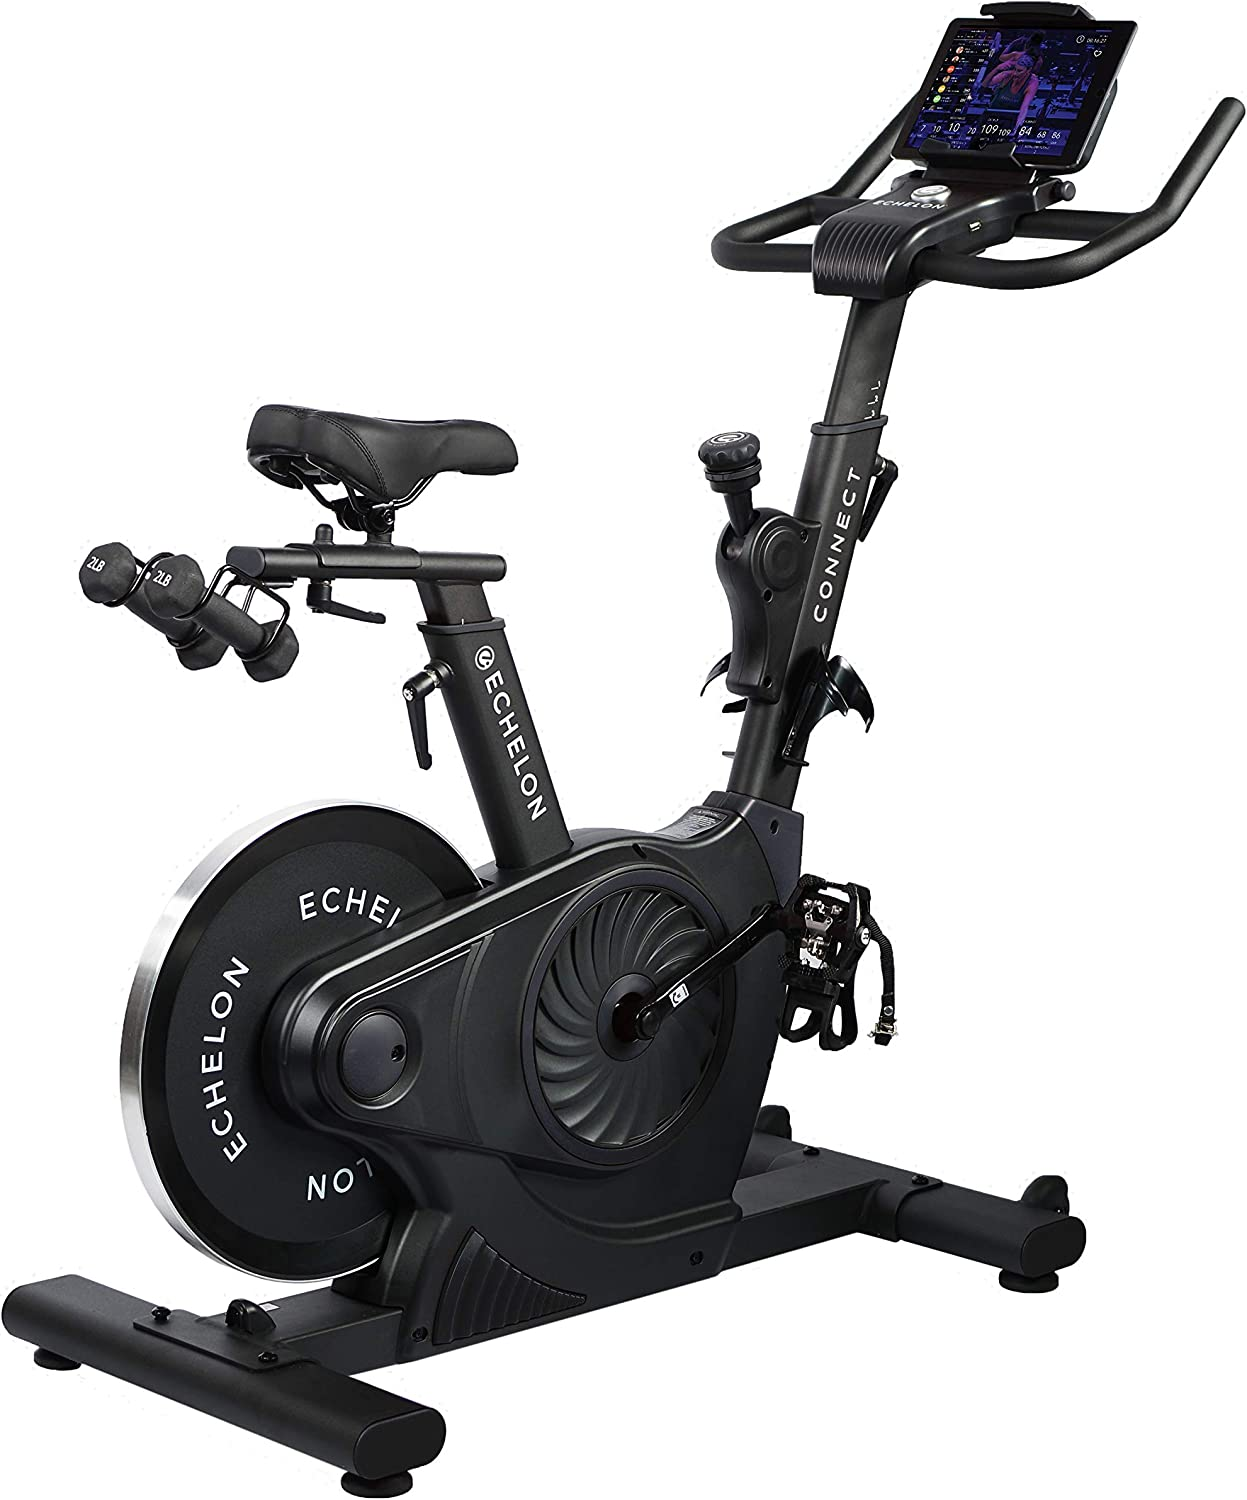 Echelon Smart Connect EX-3 Bike, Bluetooth Capability, 32 Levels of Magnetic Resistance, Competition Seat, SPD Compatible Clips and Shoe Cages,Works with The Fit App